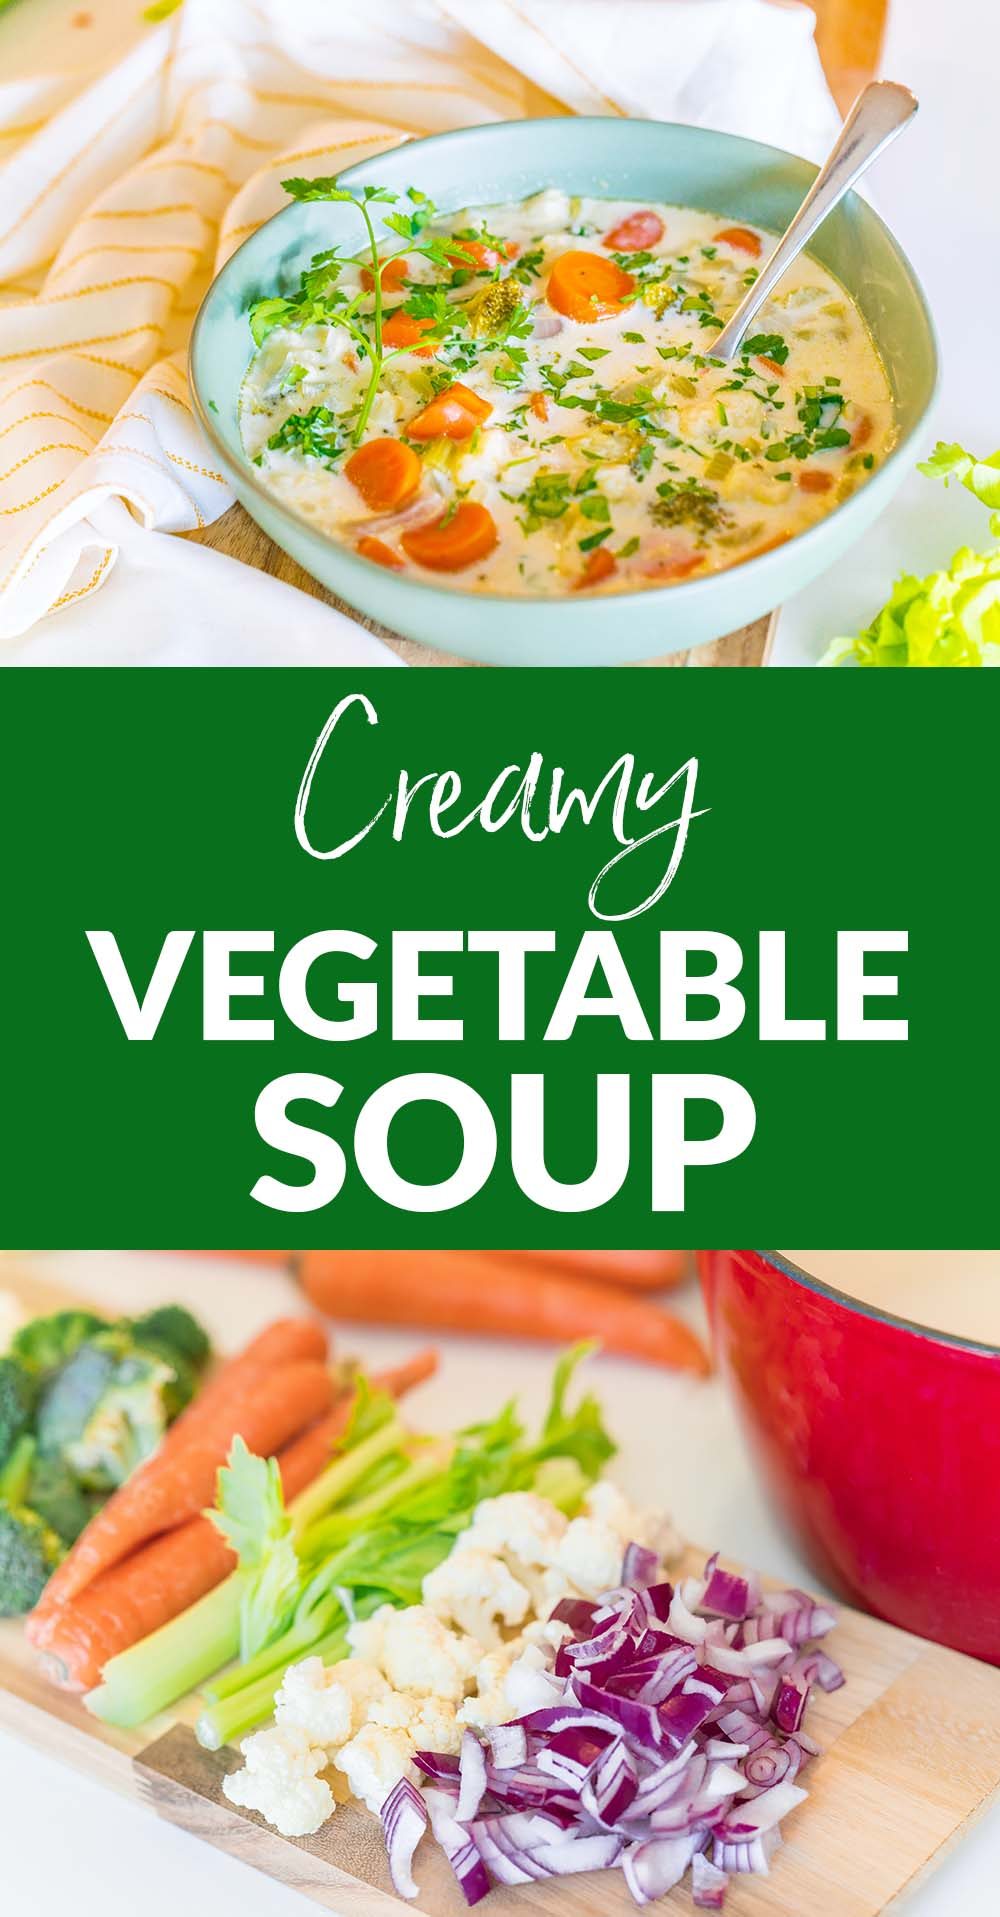 Creamy Vegetable Soup: So good, so creamy, so easy and so healthy!